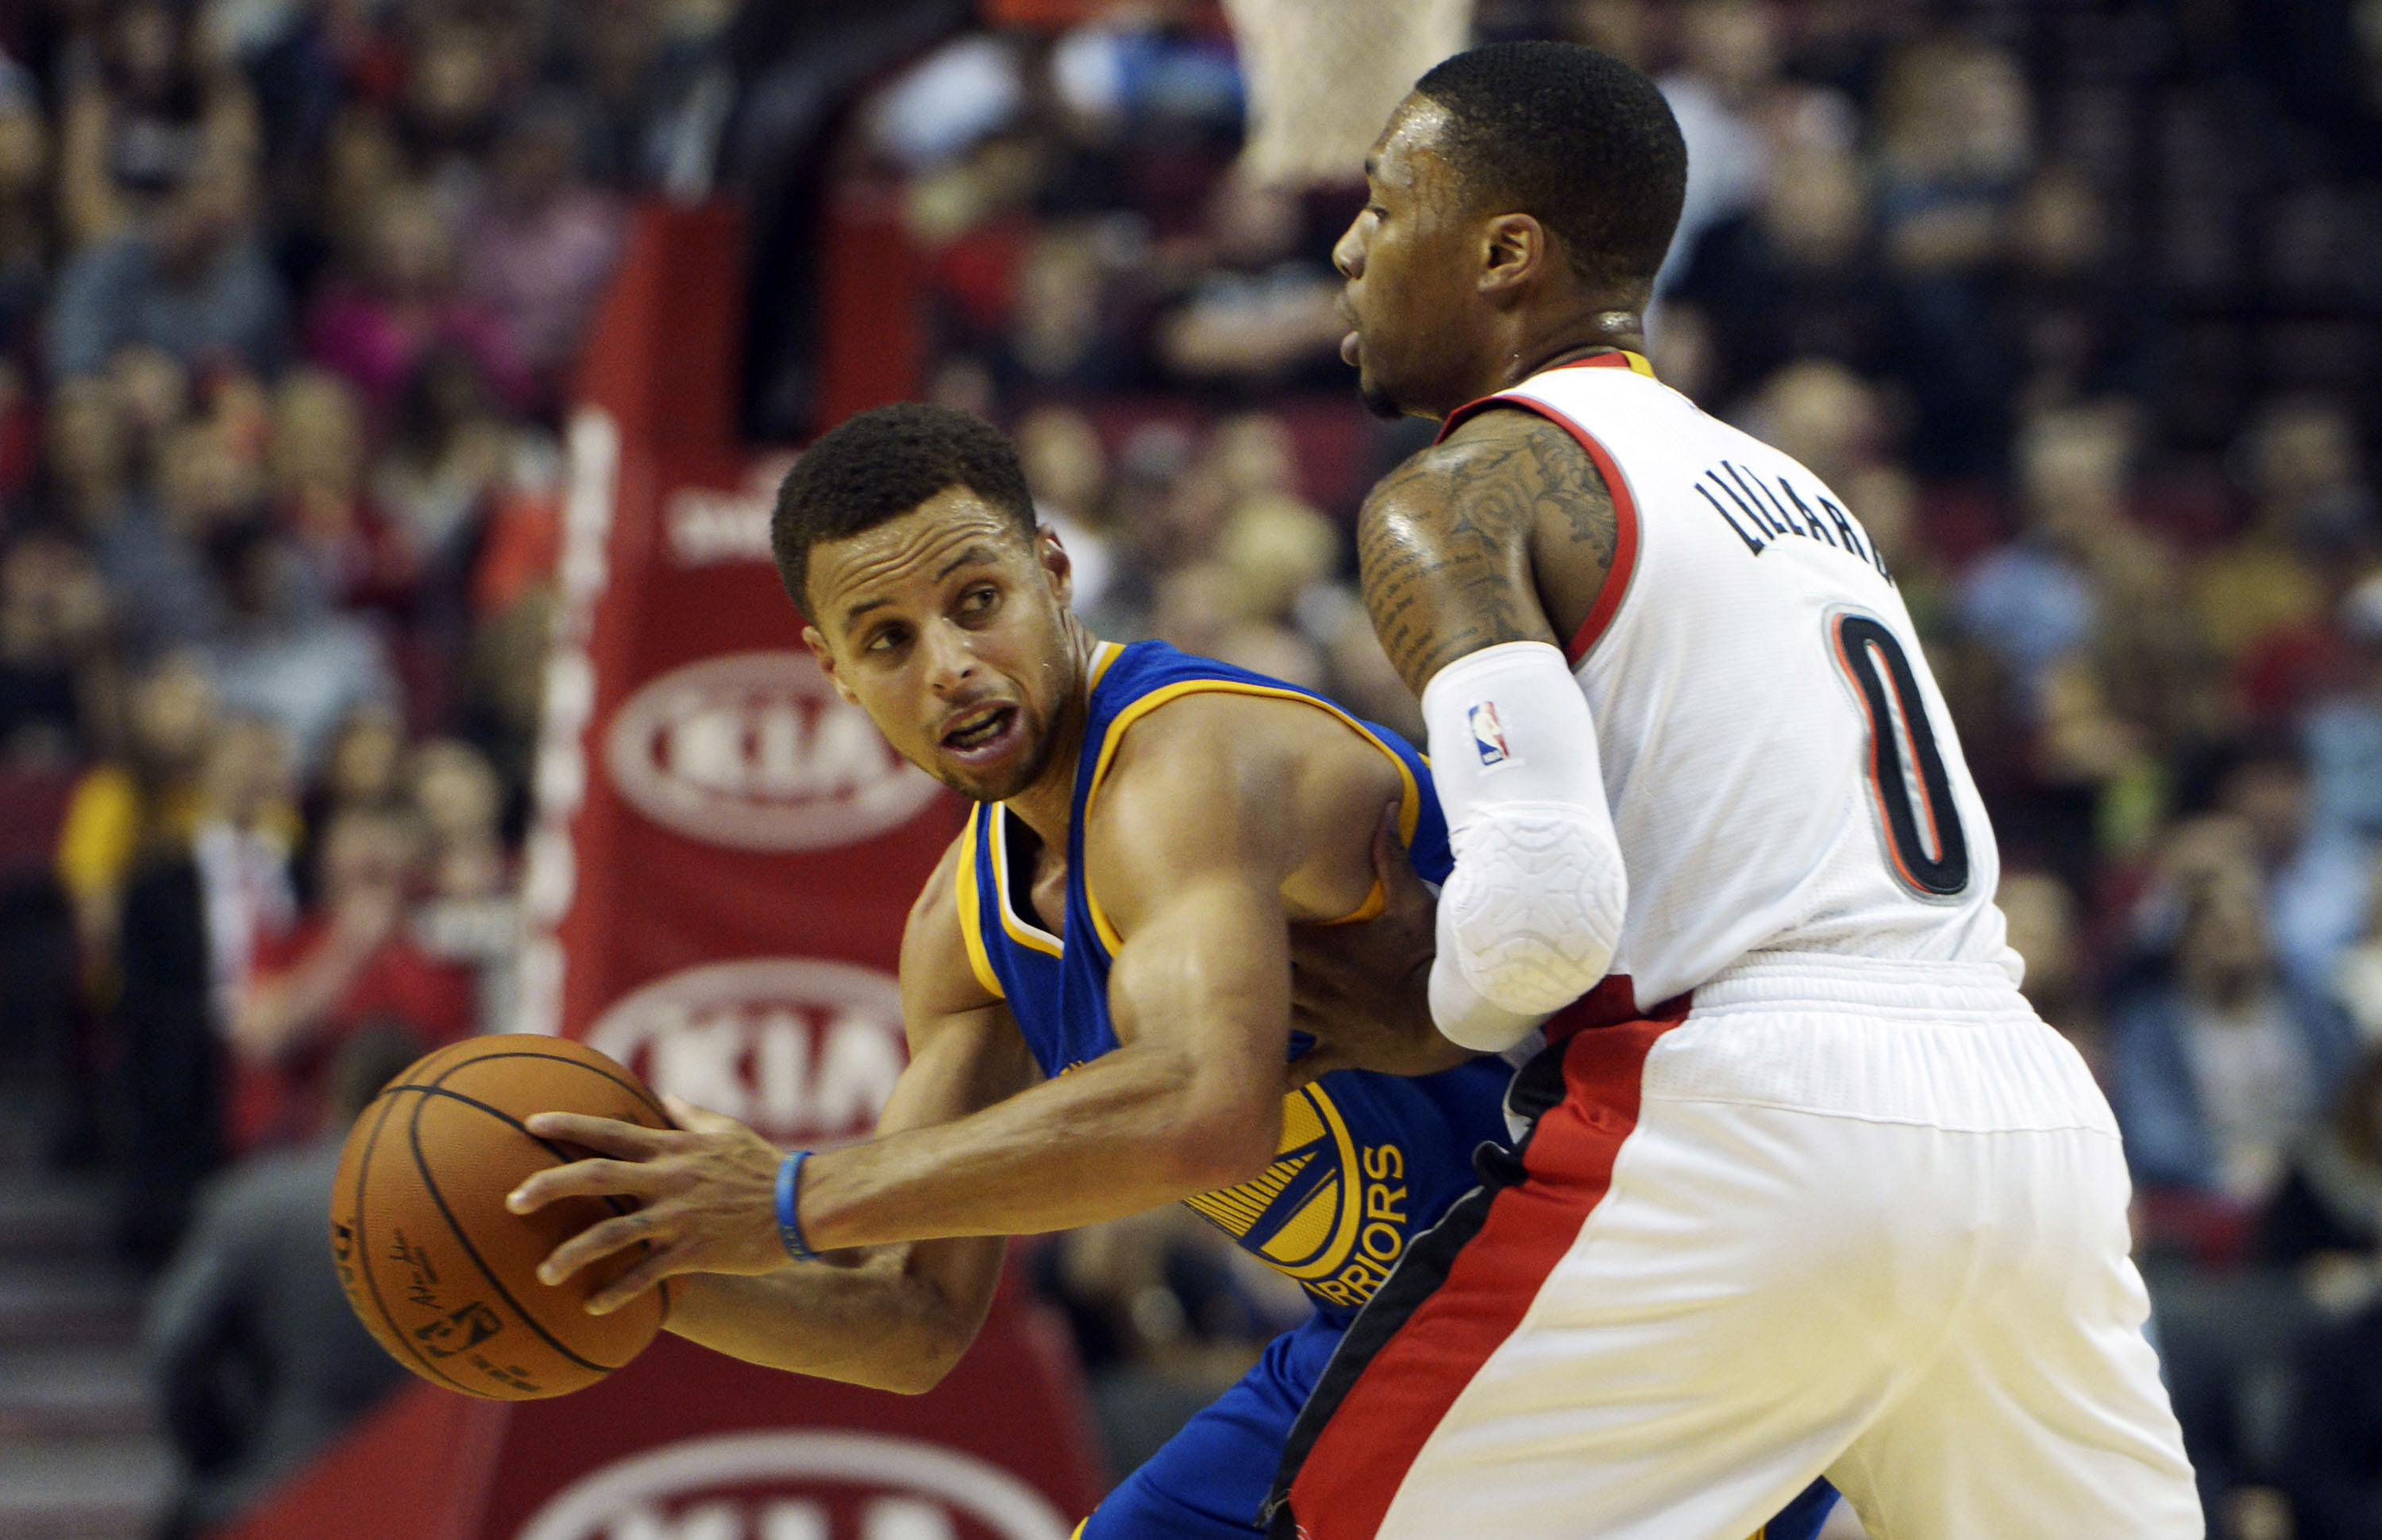 Golden State Warriors guard Stephen Curry, left, looks to pass the ball as Portland Trail Blazers guard Damian Lillard (0) defends during the first quarter of an NBA basketball game in Portland, Ore., Thursday, Oct. 8, 2015. (AP Photo/Steve Dykes)